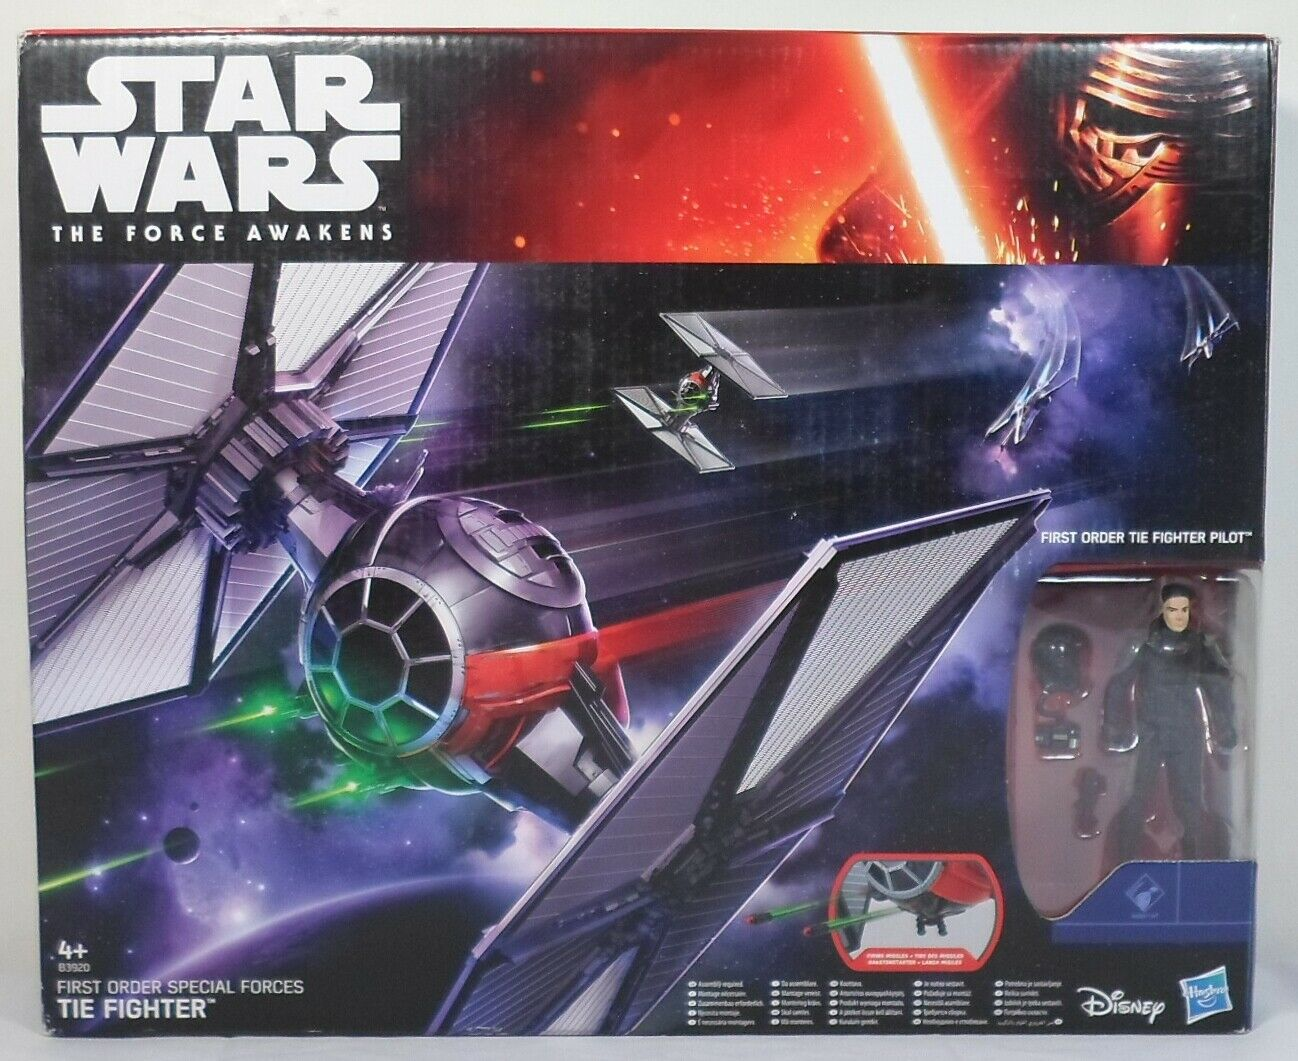 STAR WARS 2015 THE FORCE AWAKENS FIRST ORDER SPECIAL FORCES TIE FIGHTER MISB NEW